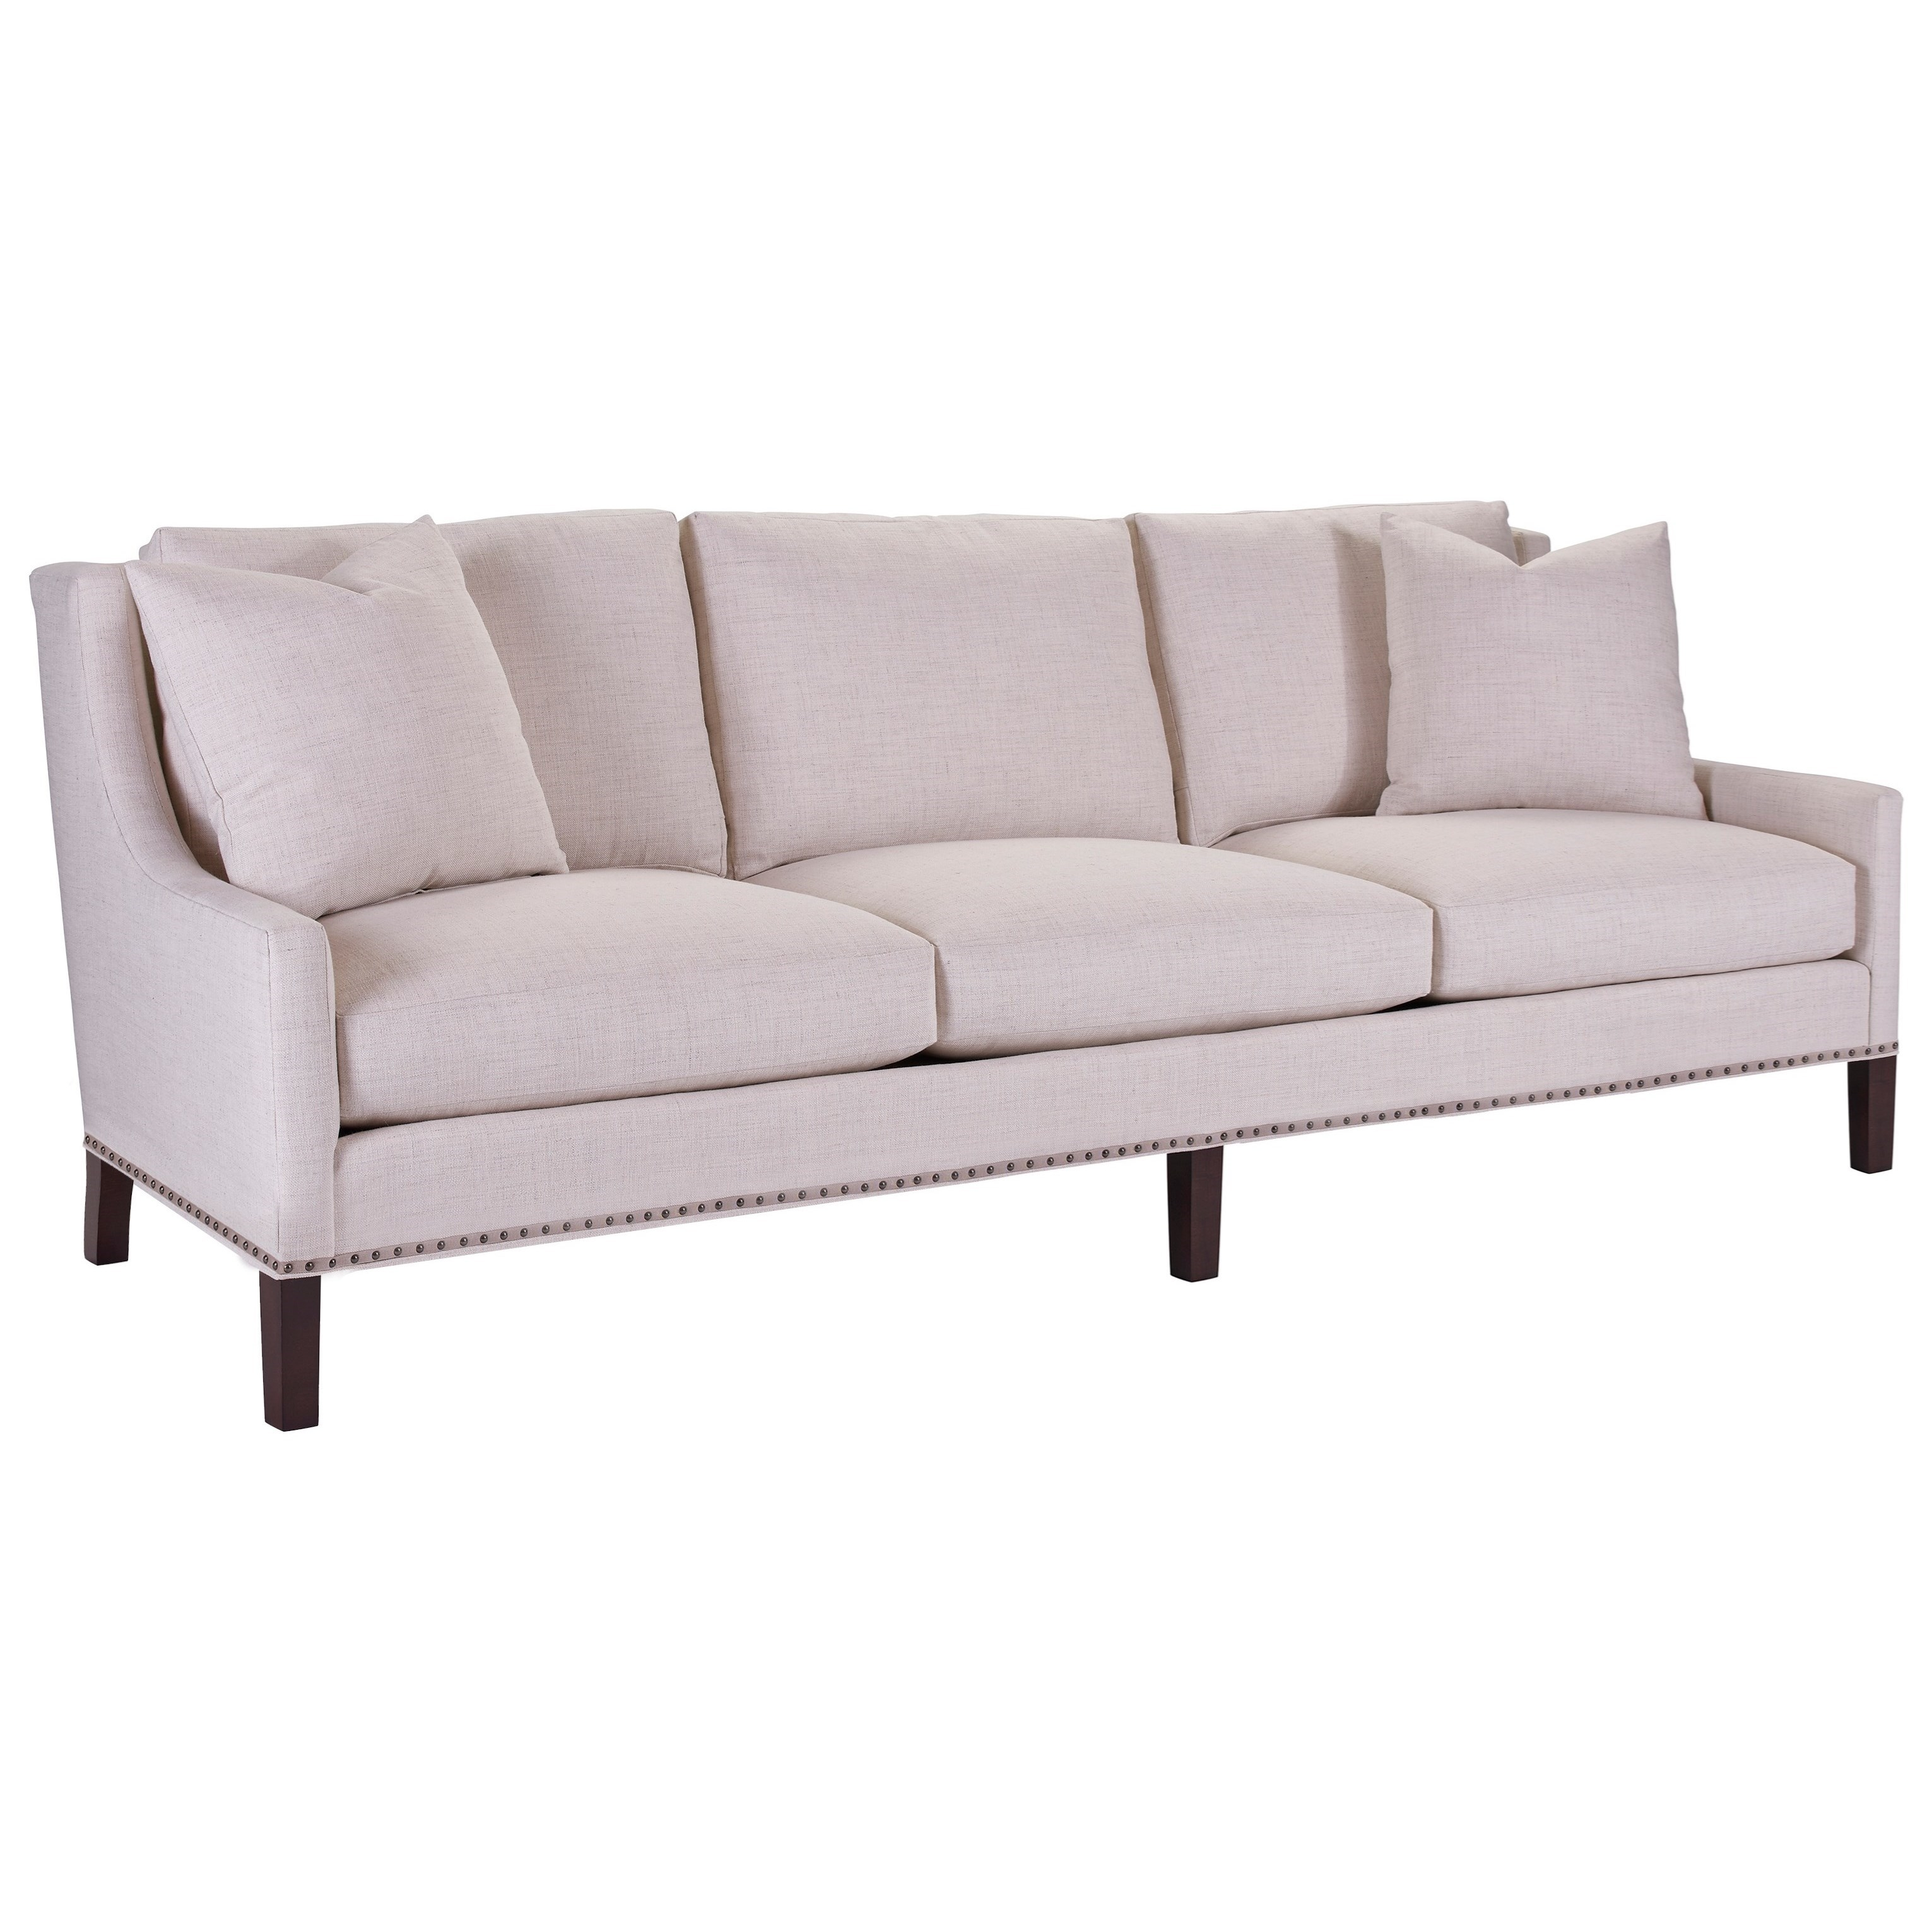 Hickory Chair Suzanne Kasler 174 Chatham Sofa With Sloped